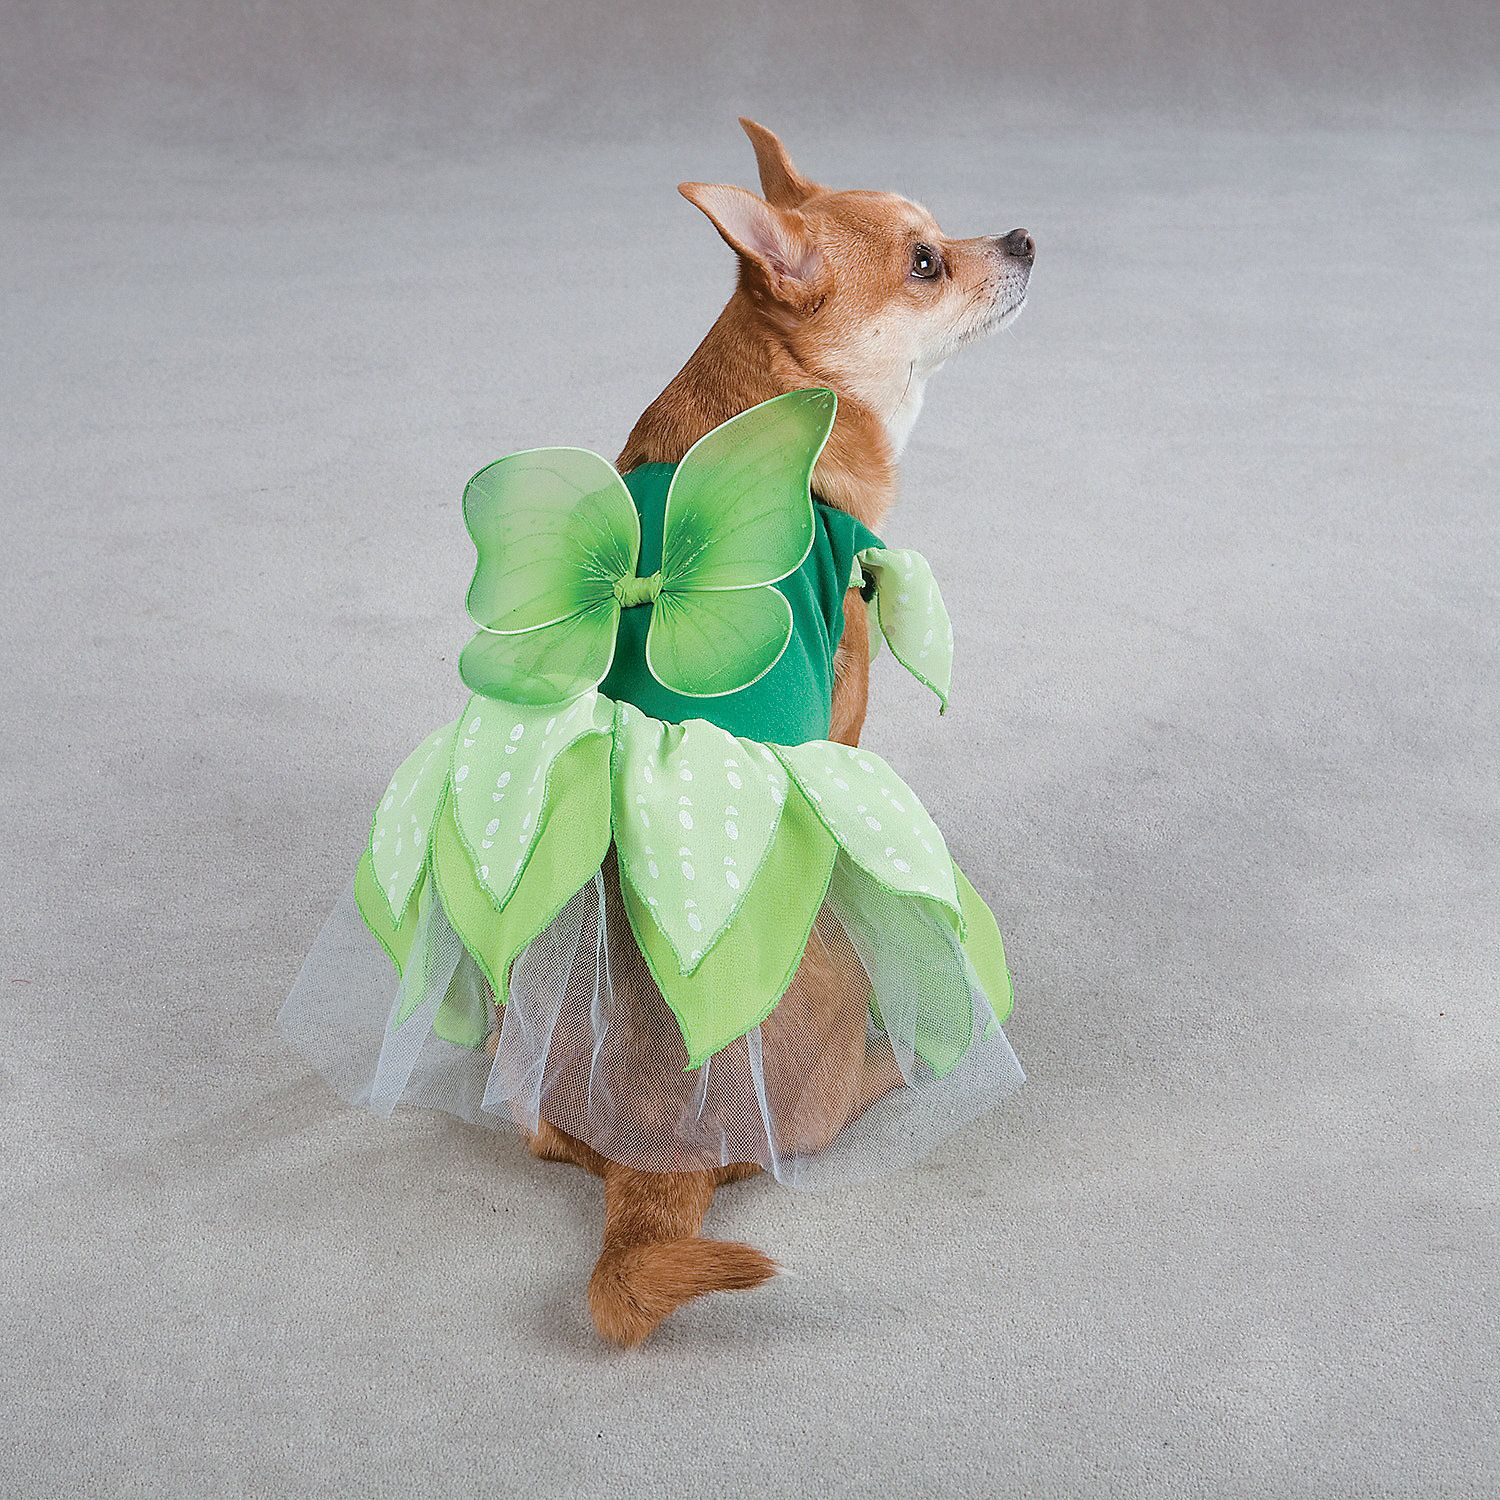 Chic Fairy Dog Costume for Halloween & Green Fairy Tails Dog Costume - OrientalTrading.com #OrientalTrading ...